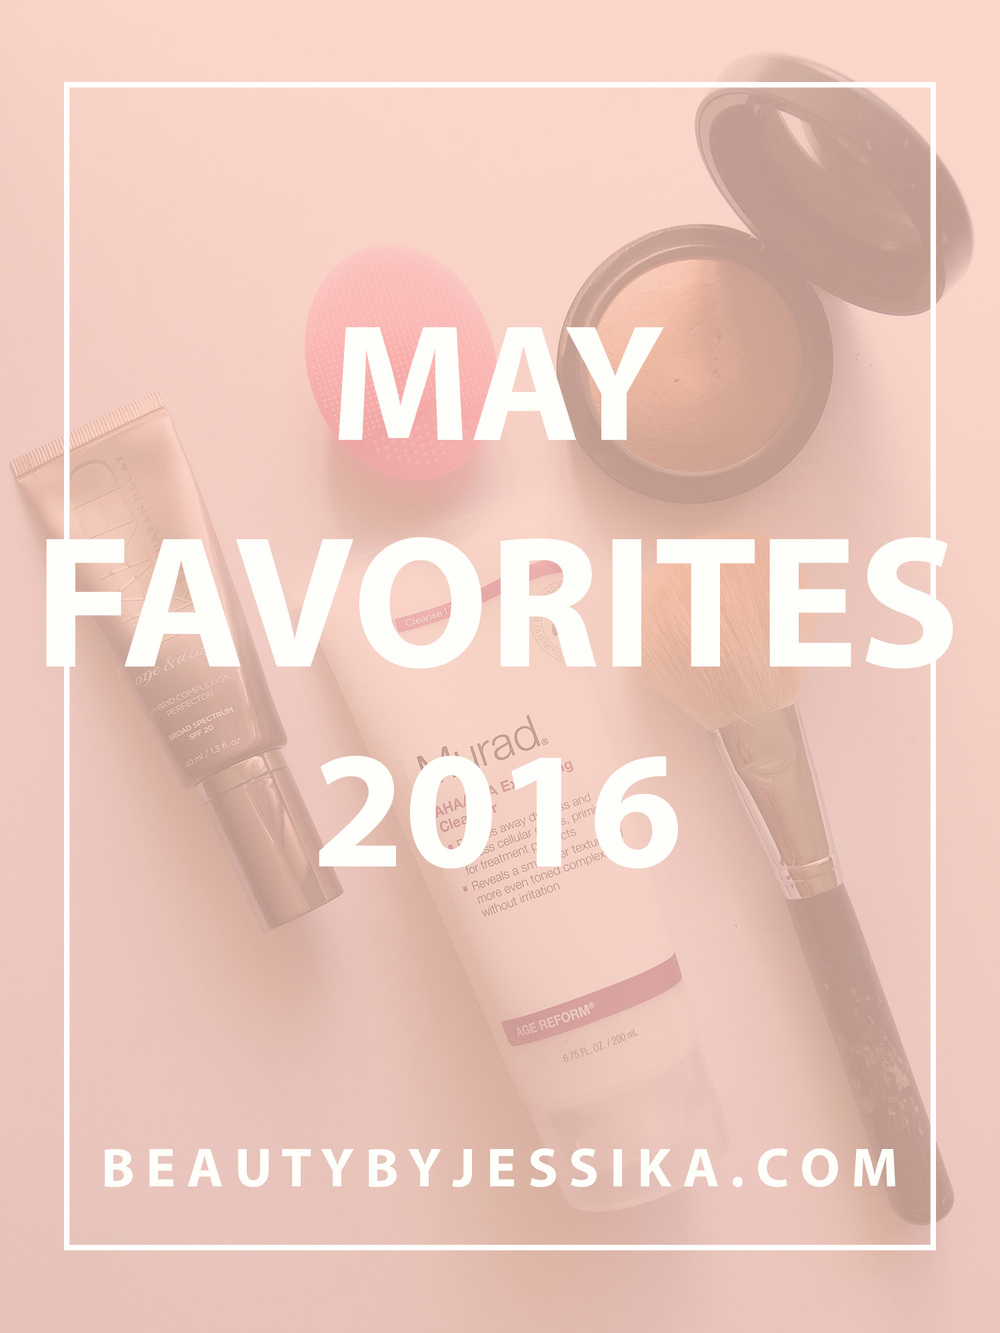 Hi guys! Here's a roundup of my May favorites feat. my favorite makeup & skincare products and YouTuber! Read more at beautybyjessika.com.